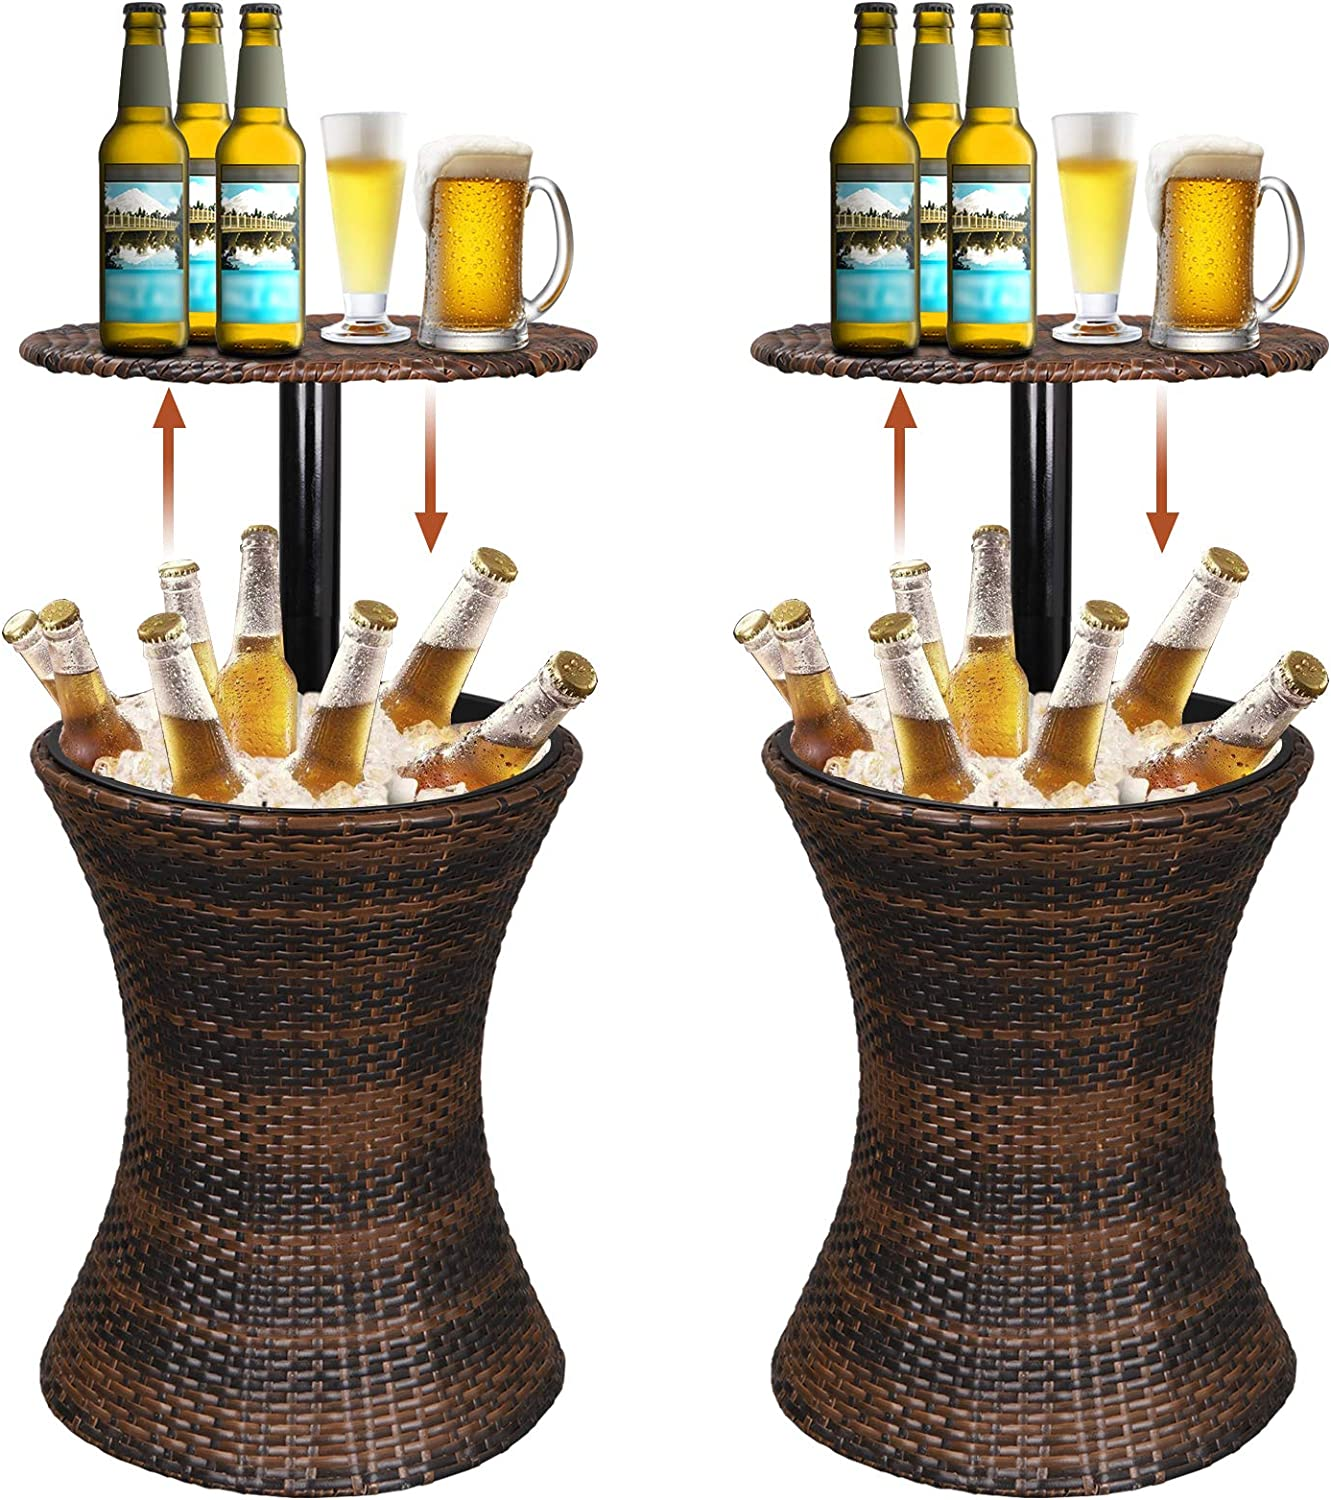 Super Deal 3in1 Cool Wicker Bar Table Cooler Cocktail Coffee Table All in One, Rattan Style Adjustable Height Patio Party Deck Pool Use, Brown Set of 2